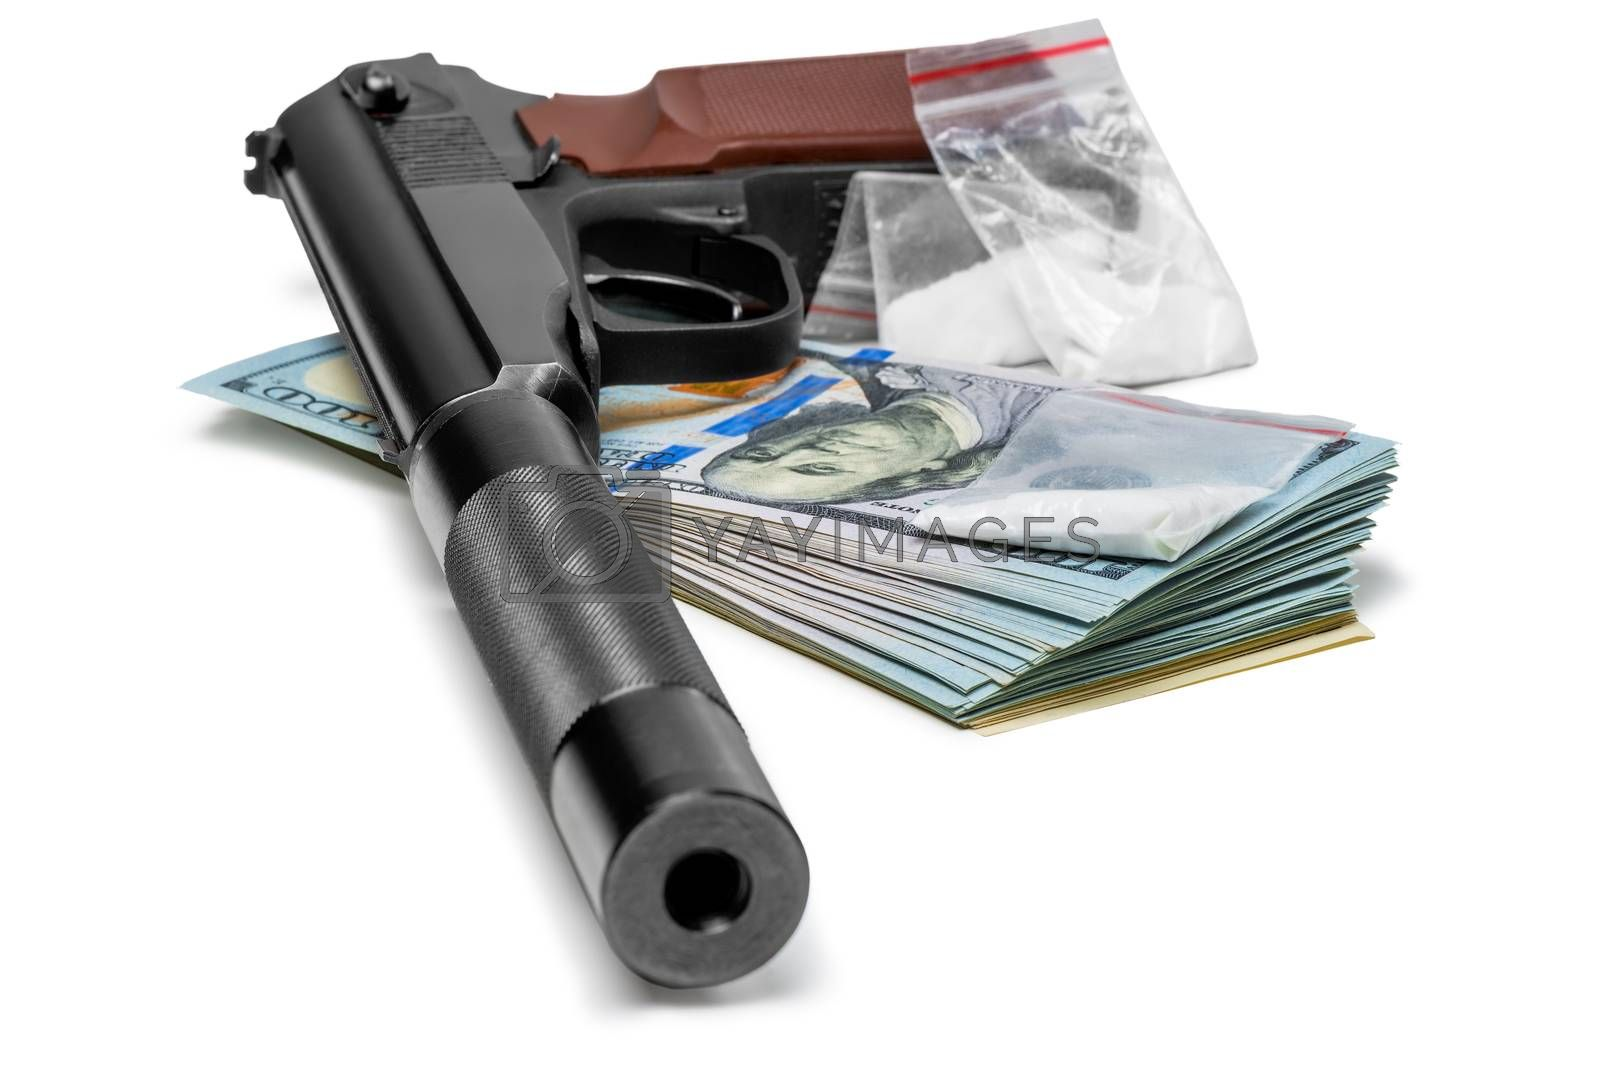 crime concept - a pistol with a silencer, money and drugs close  by Labunskiy K.